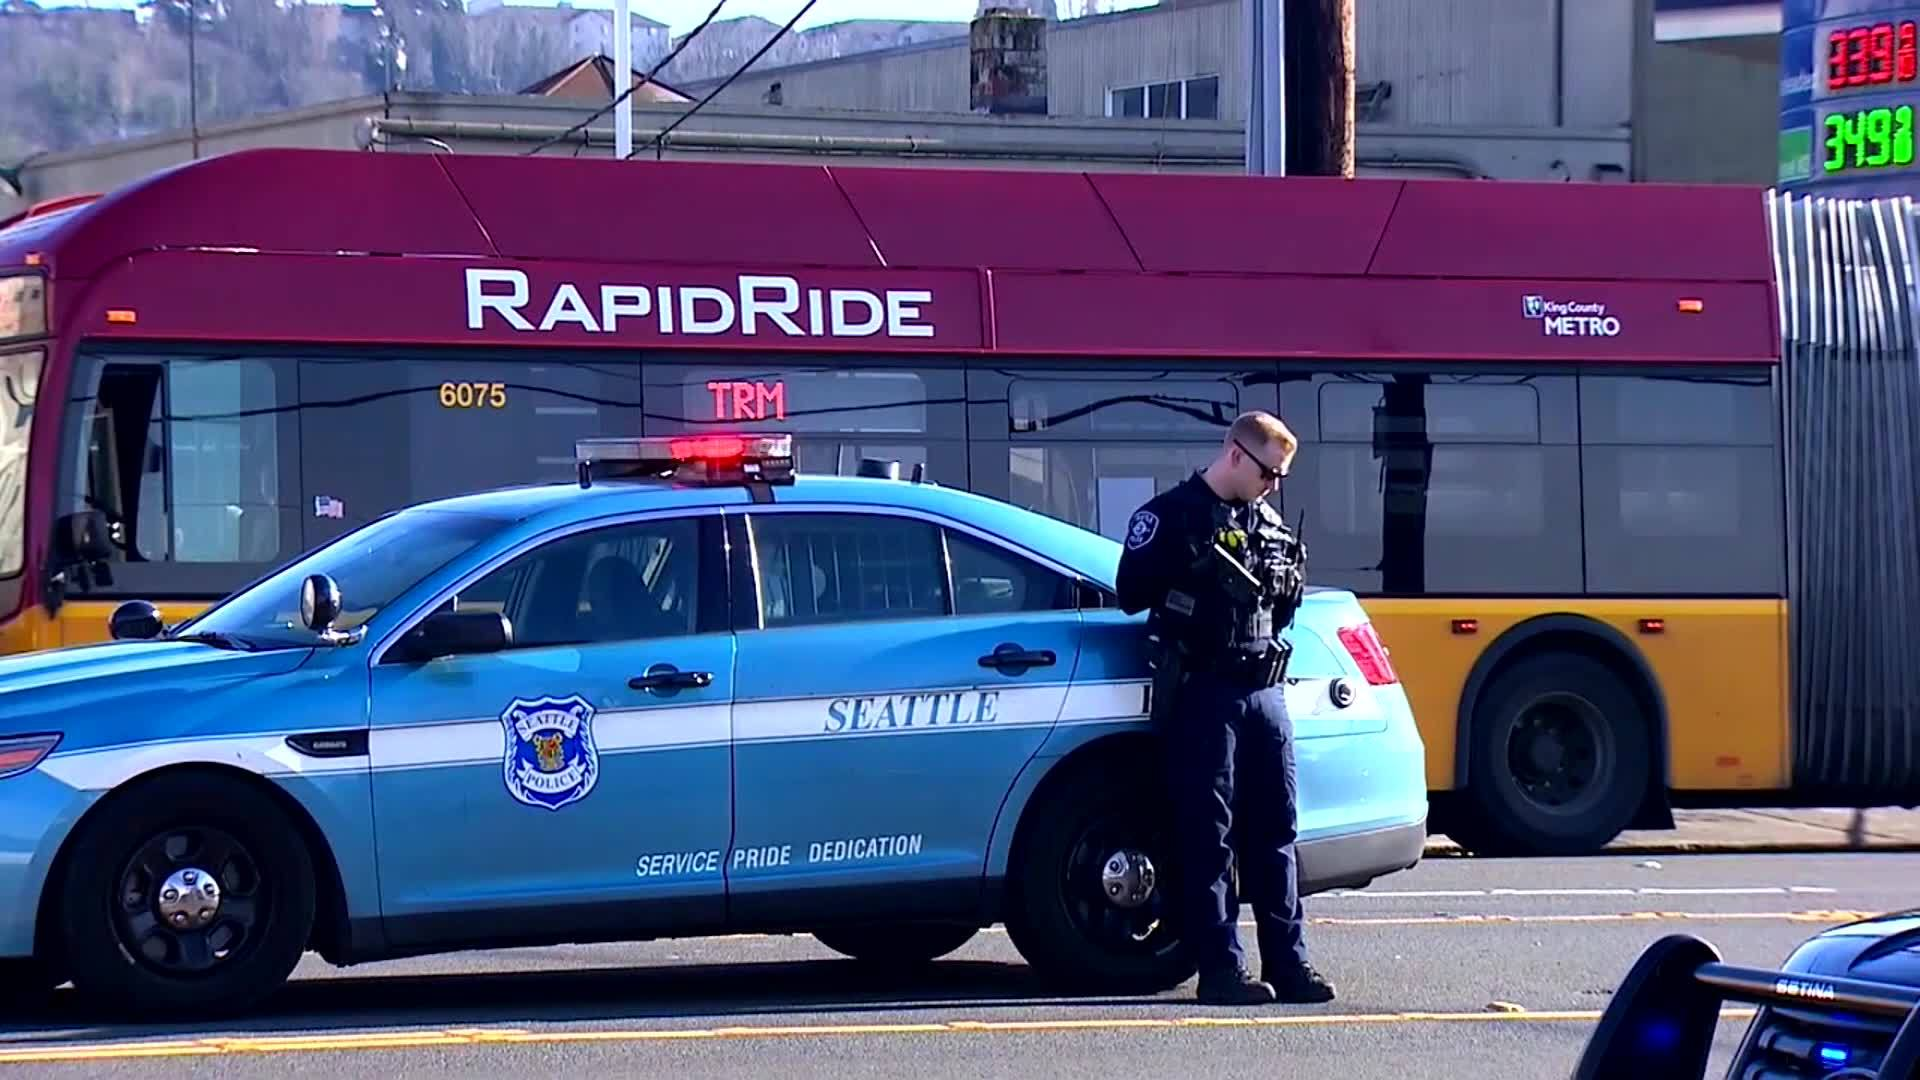 88-year-old bus passenger is pushed and responds with gunfire